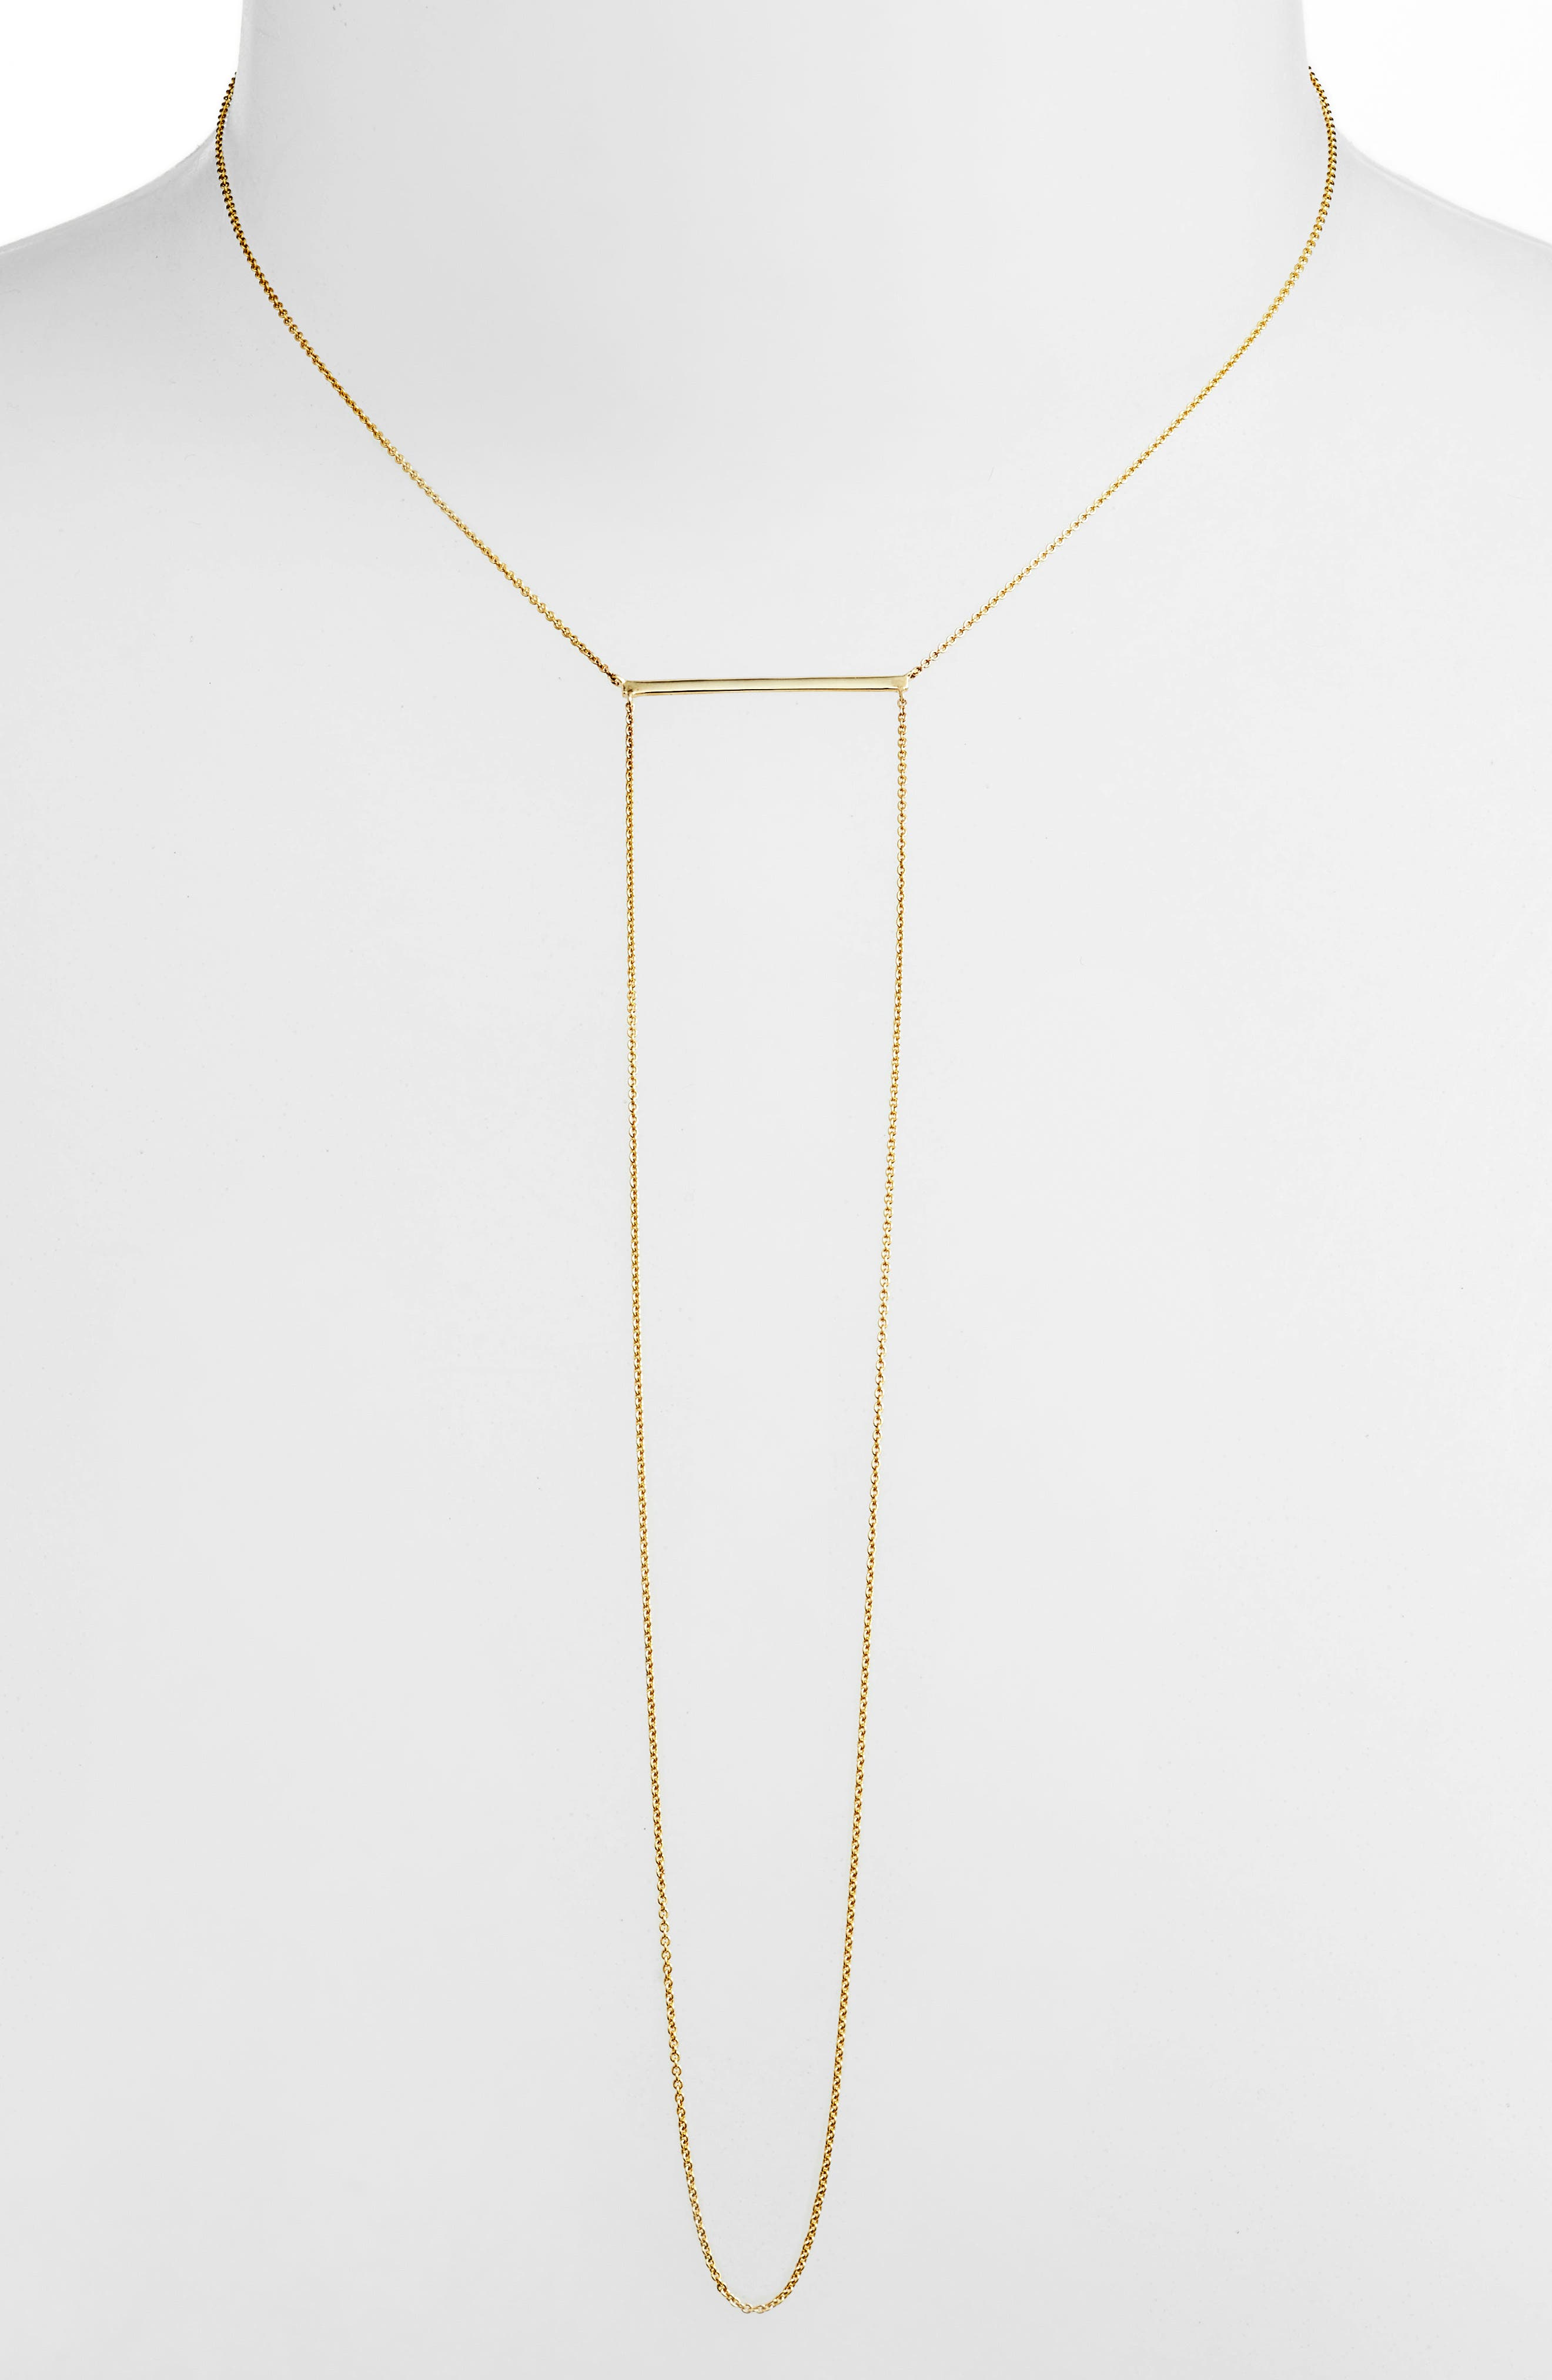 Alternate Image 1 Selected - Bony Levy Drama Bar Pendant Necklace (Nordstrom Exclusive)